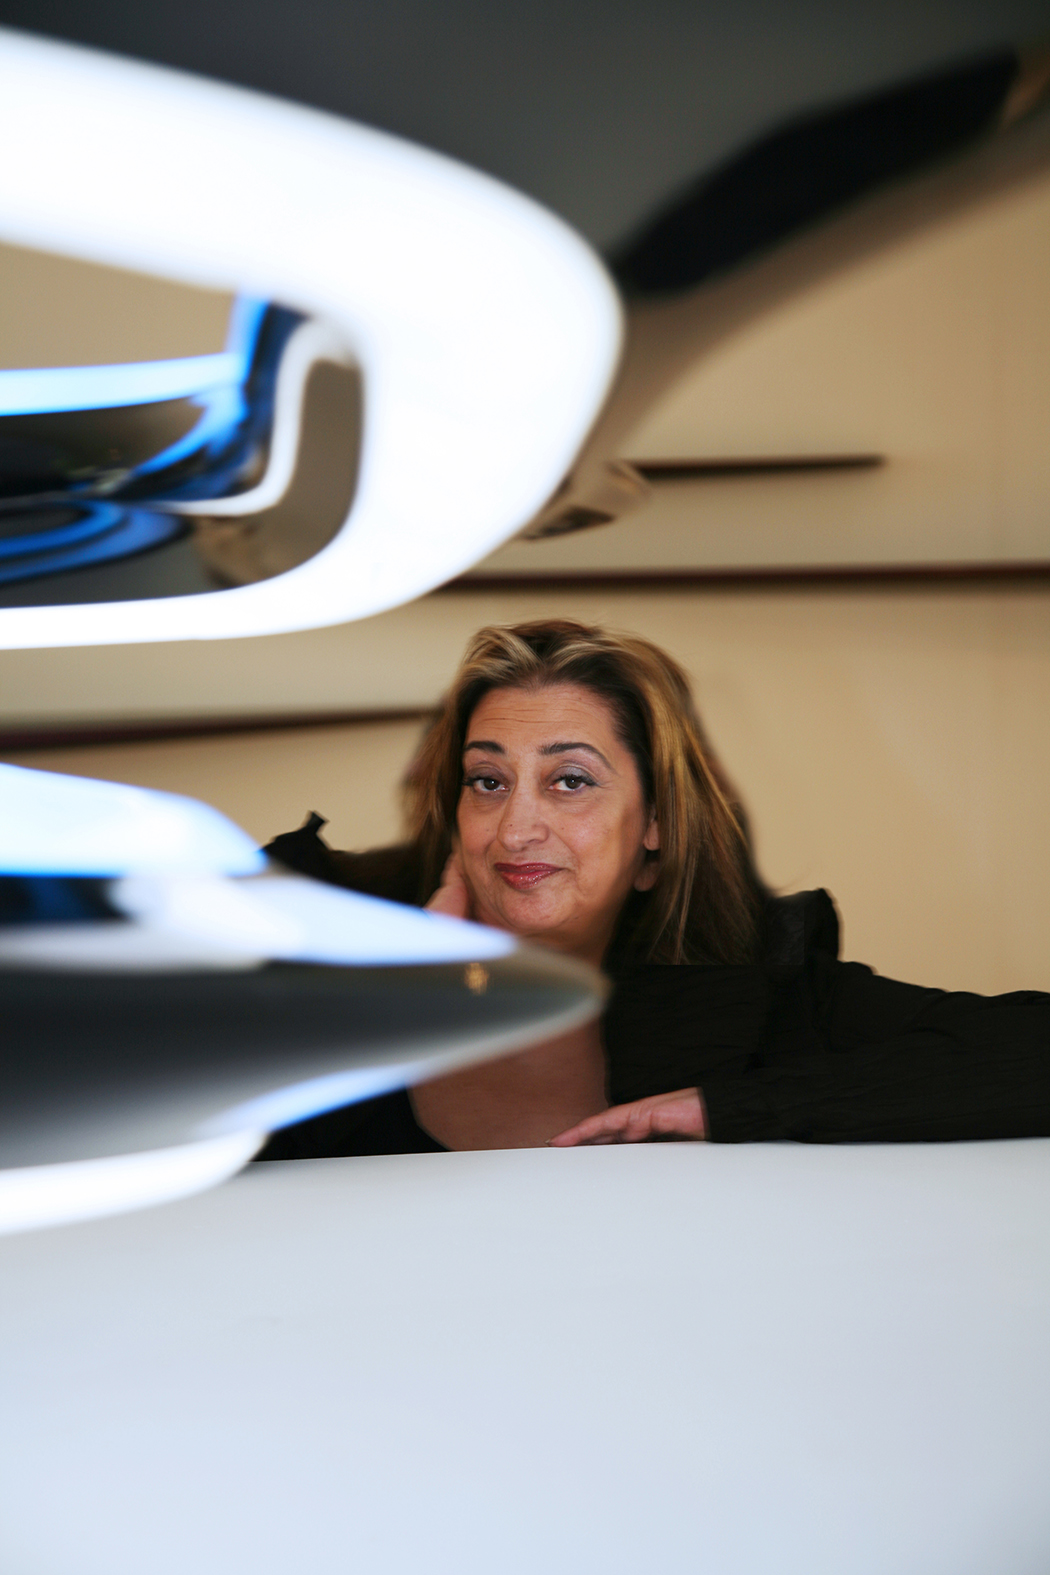 Dame Zaha Hadid, Founder and Director of Zaha Hadid Architects. Source: Luke Hayes